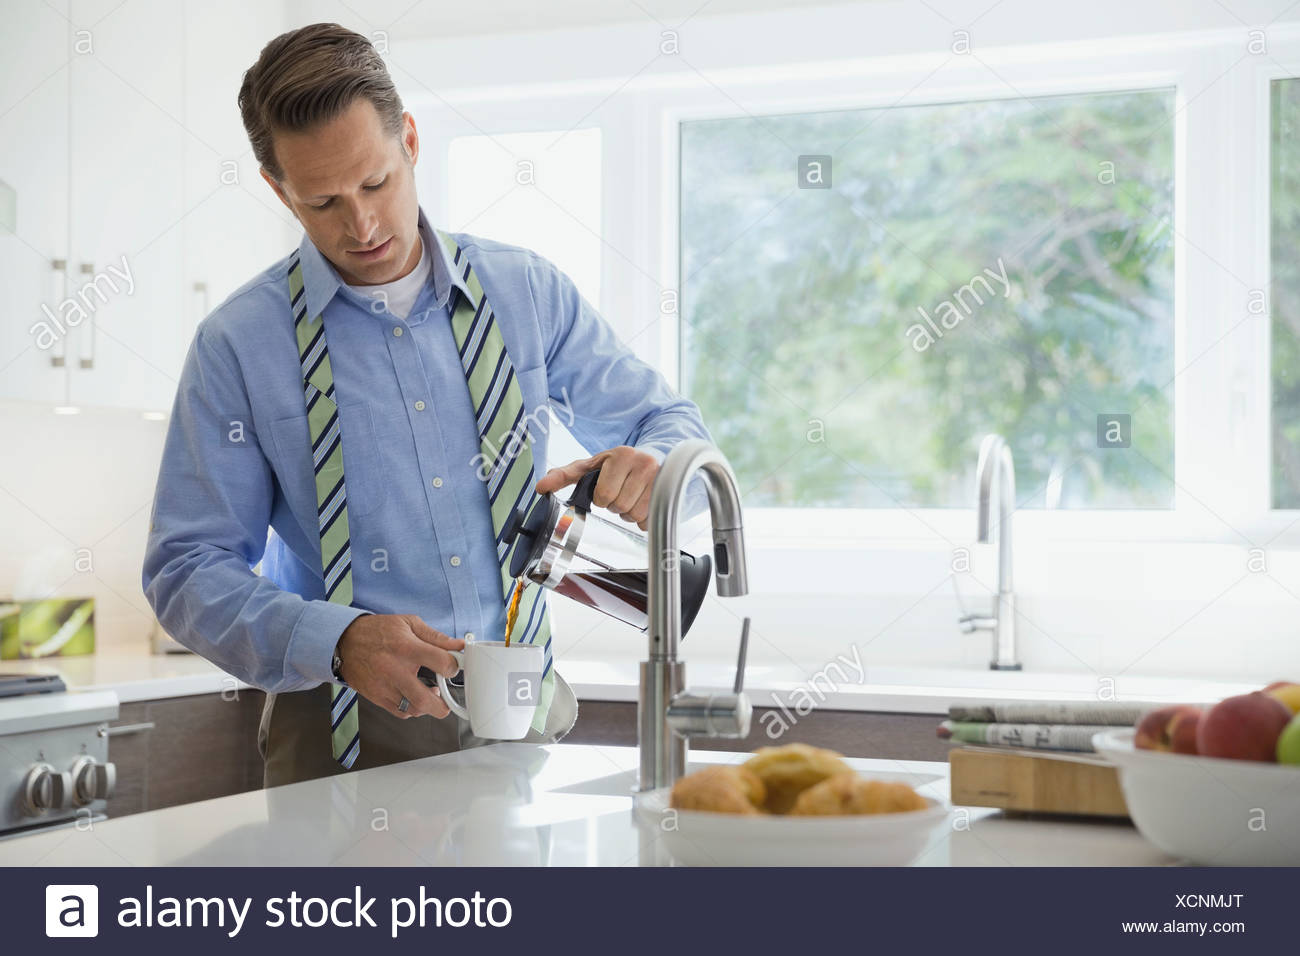 Businessman pouring coffee en cuisine domestique Photo Stock